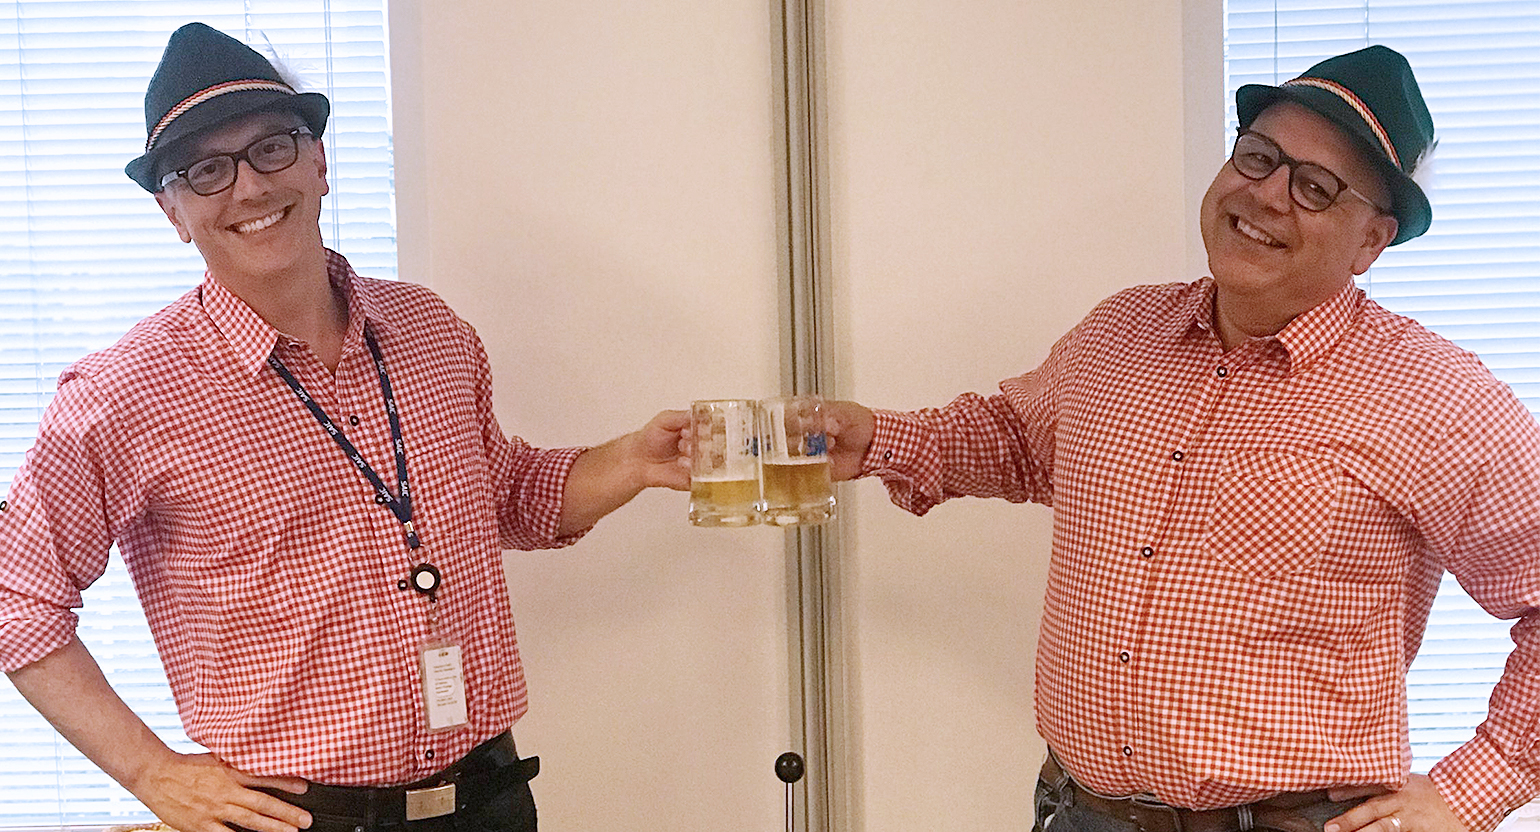 Josh Jackson and Mark Escobar celebrate Oktoberfest, one of the larger fundraisers organized by SAIC employees.